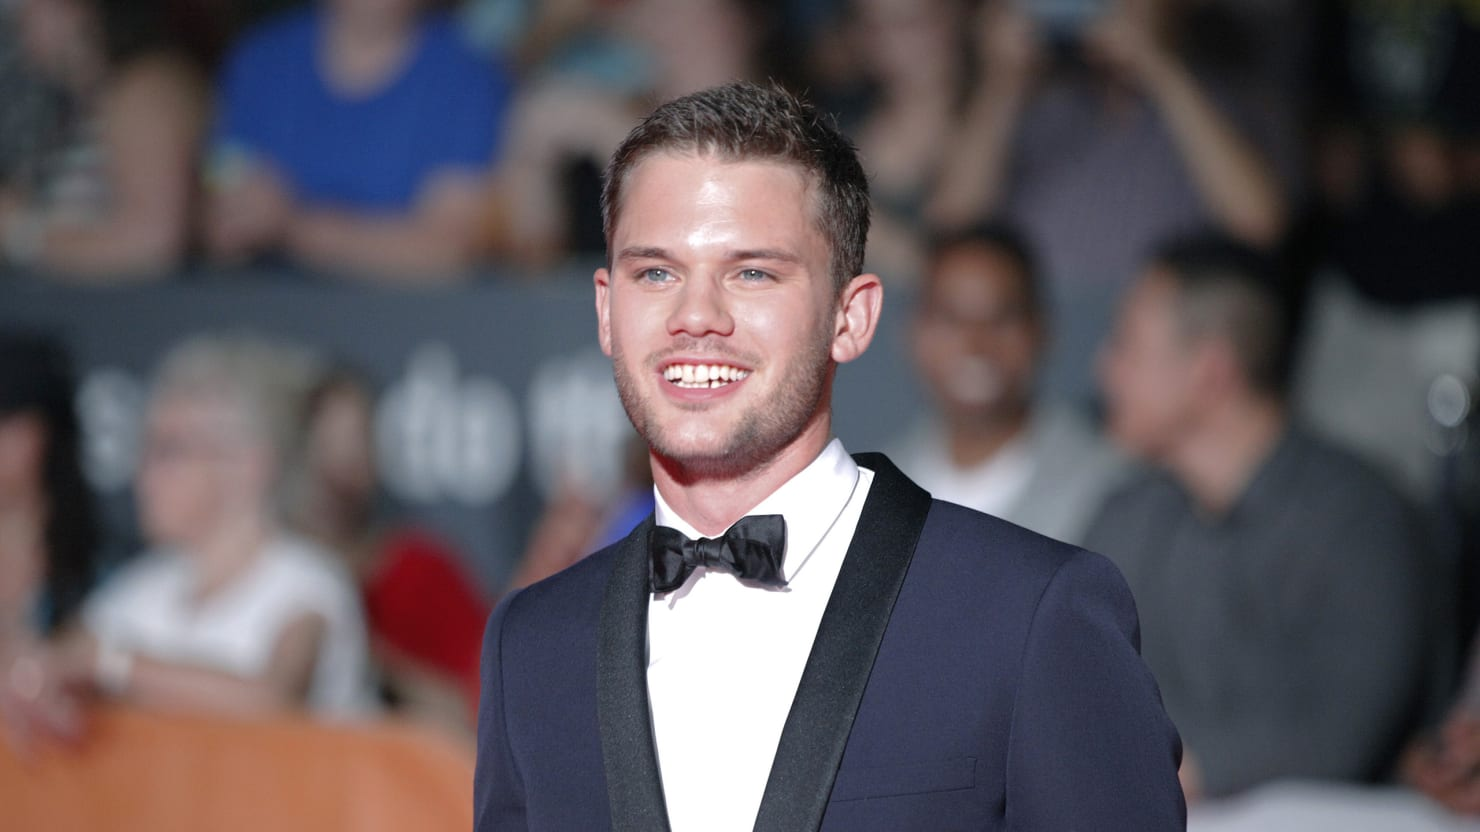 Stonewall Star Jeremy Irvine Defends His Hated Movie-2616